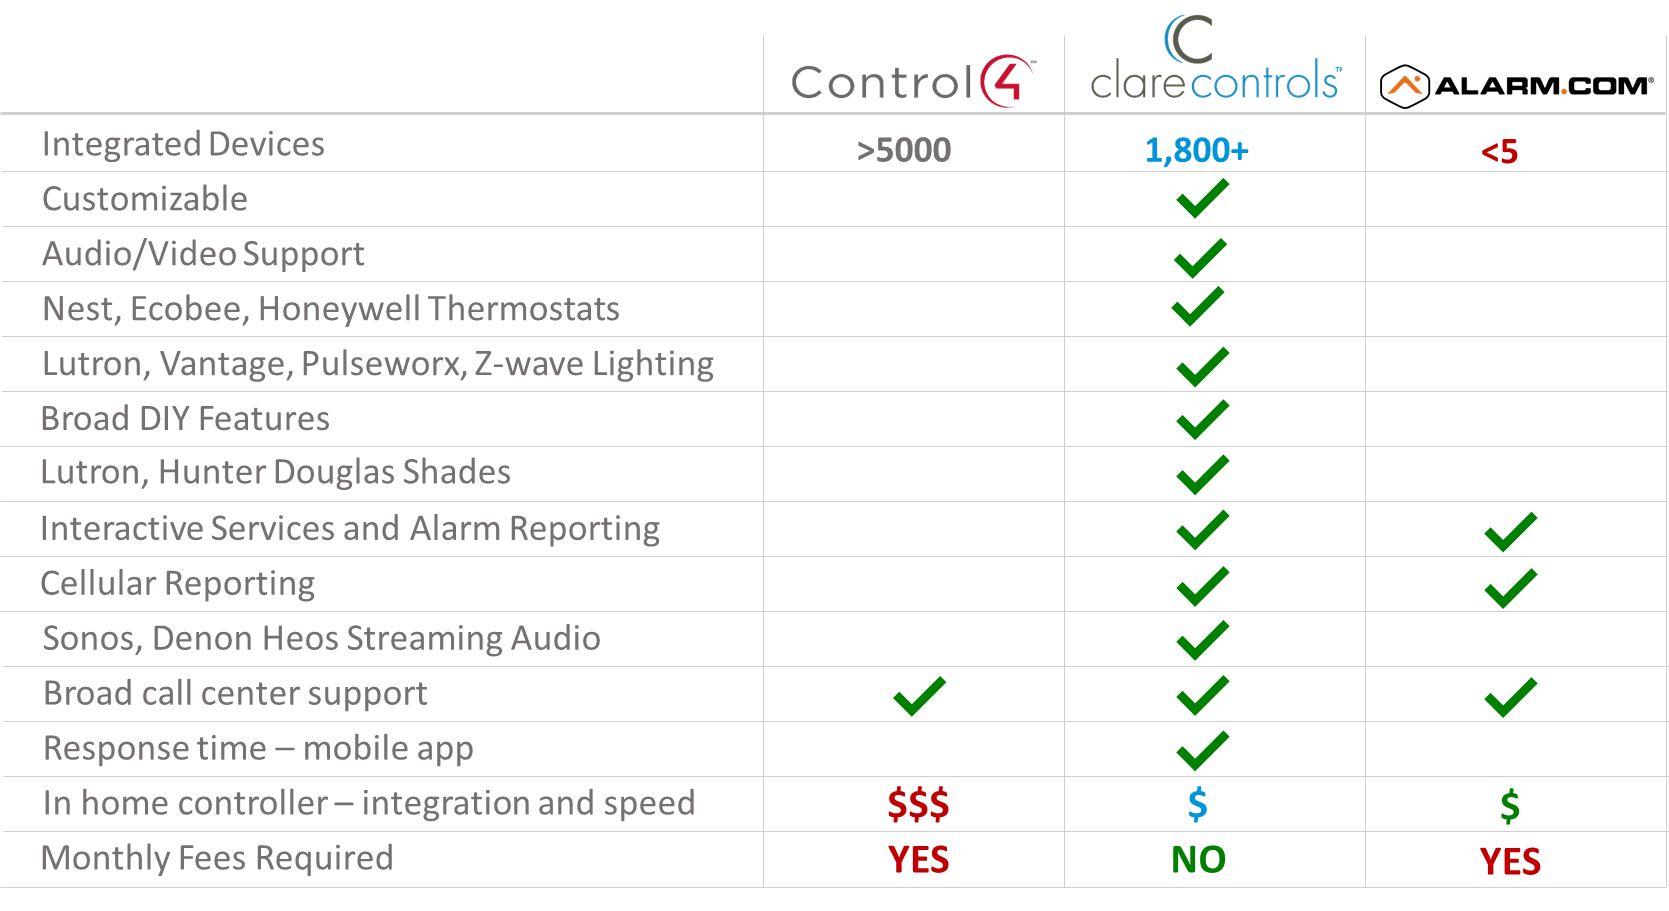 Clare Controls Features